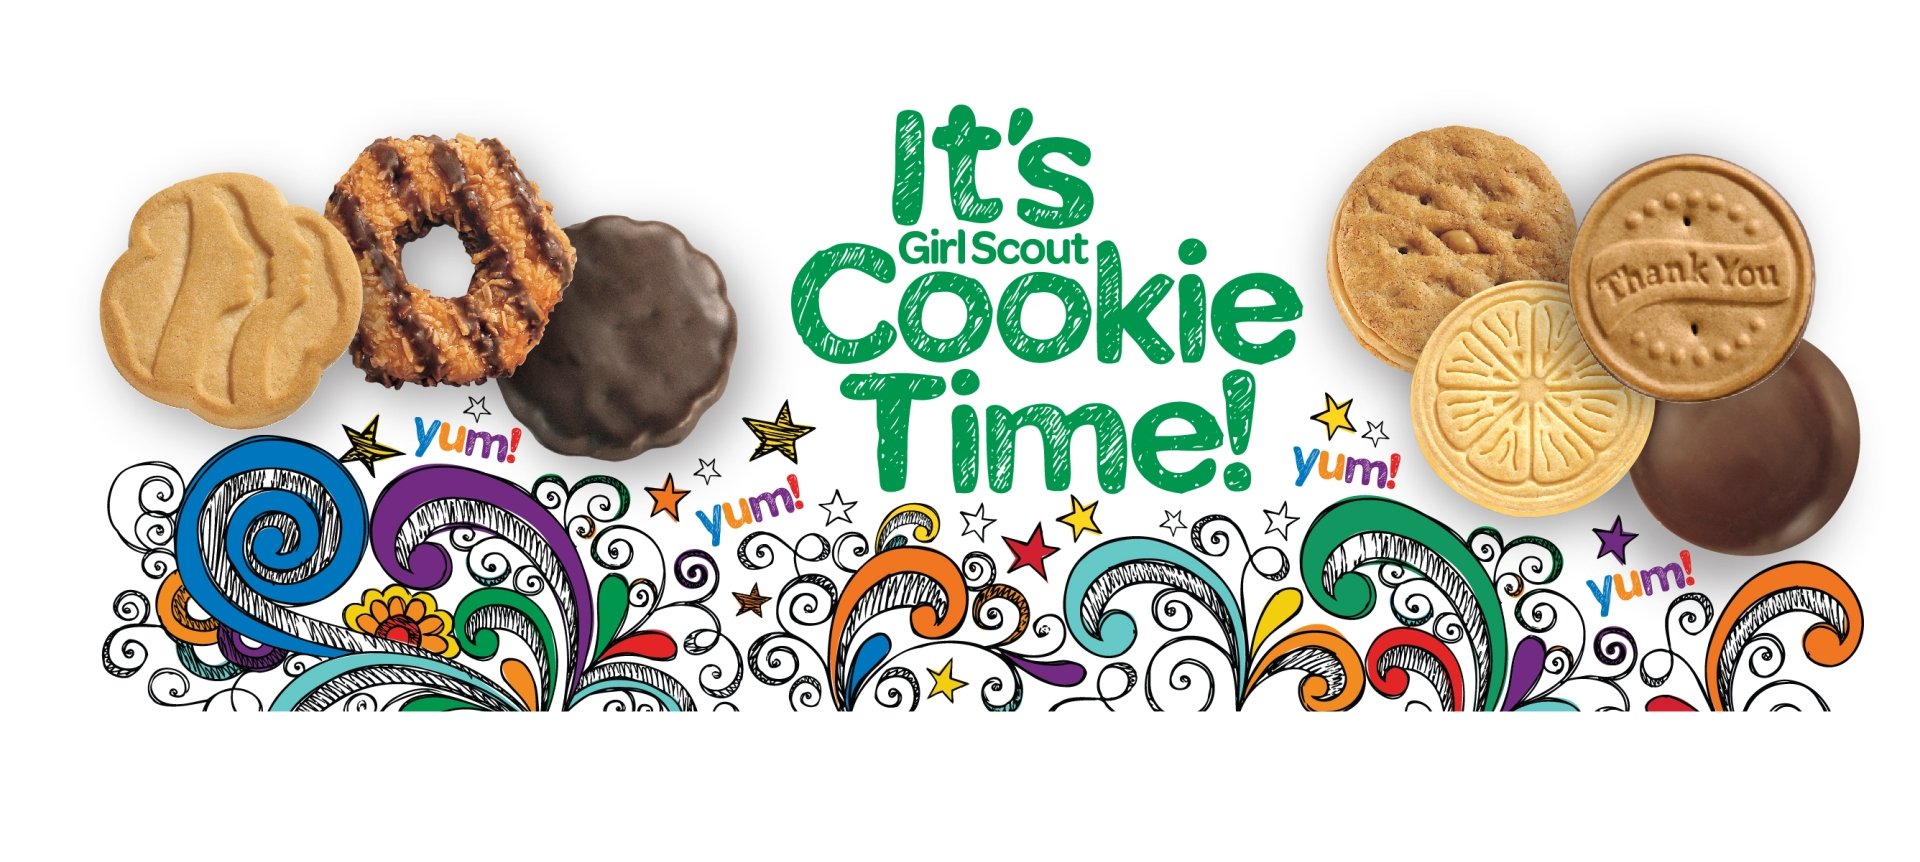 national girl scout cookie weekend is february 27 march